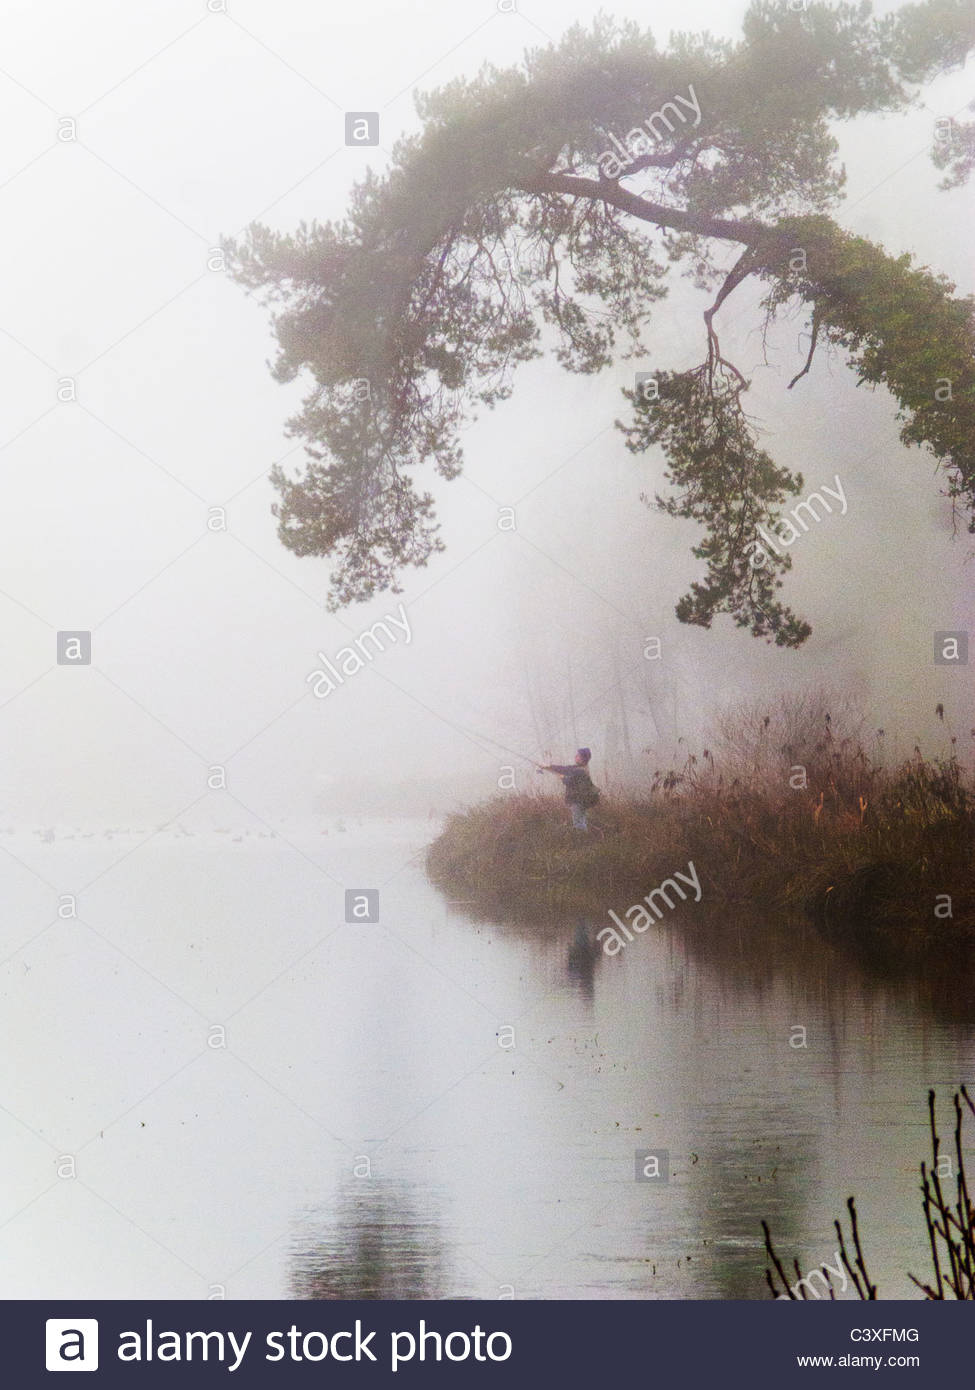 Person fishing on foggy riverbank - Stock Image